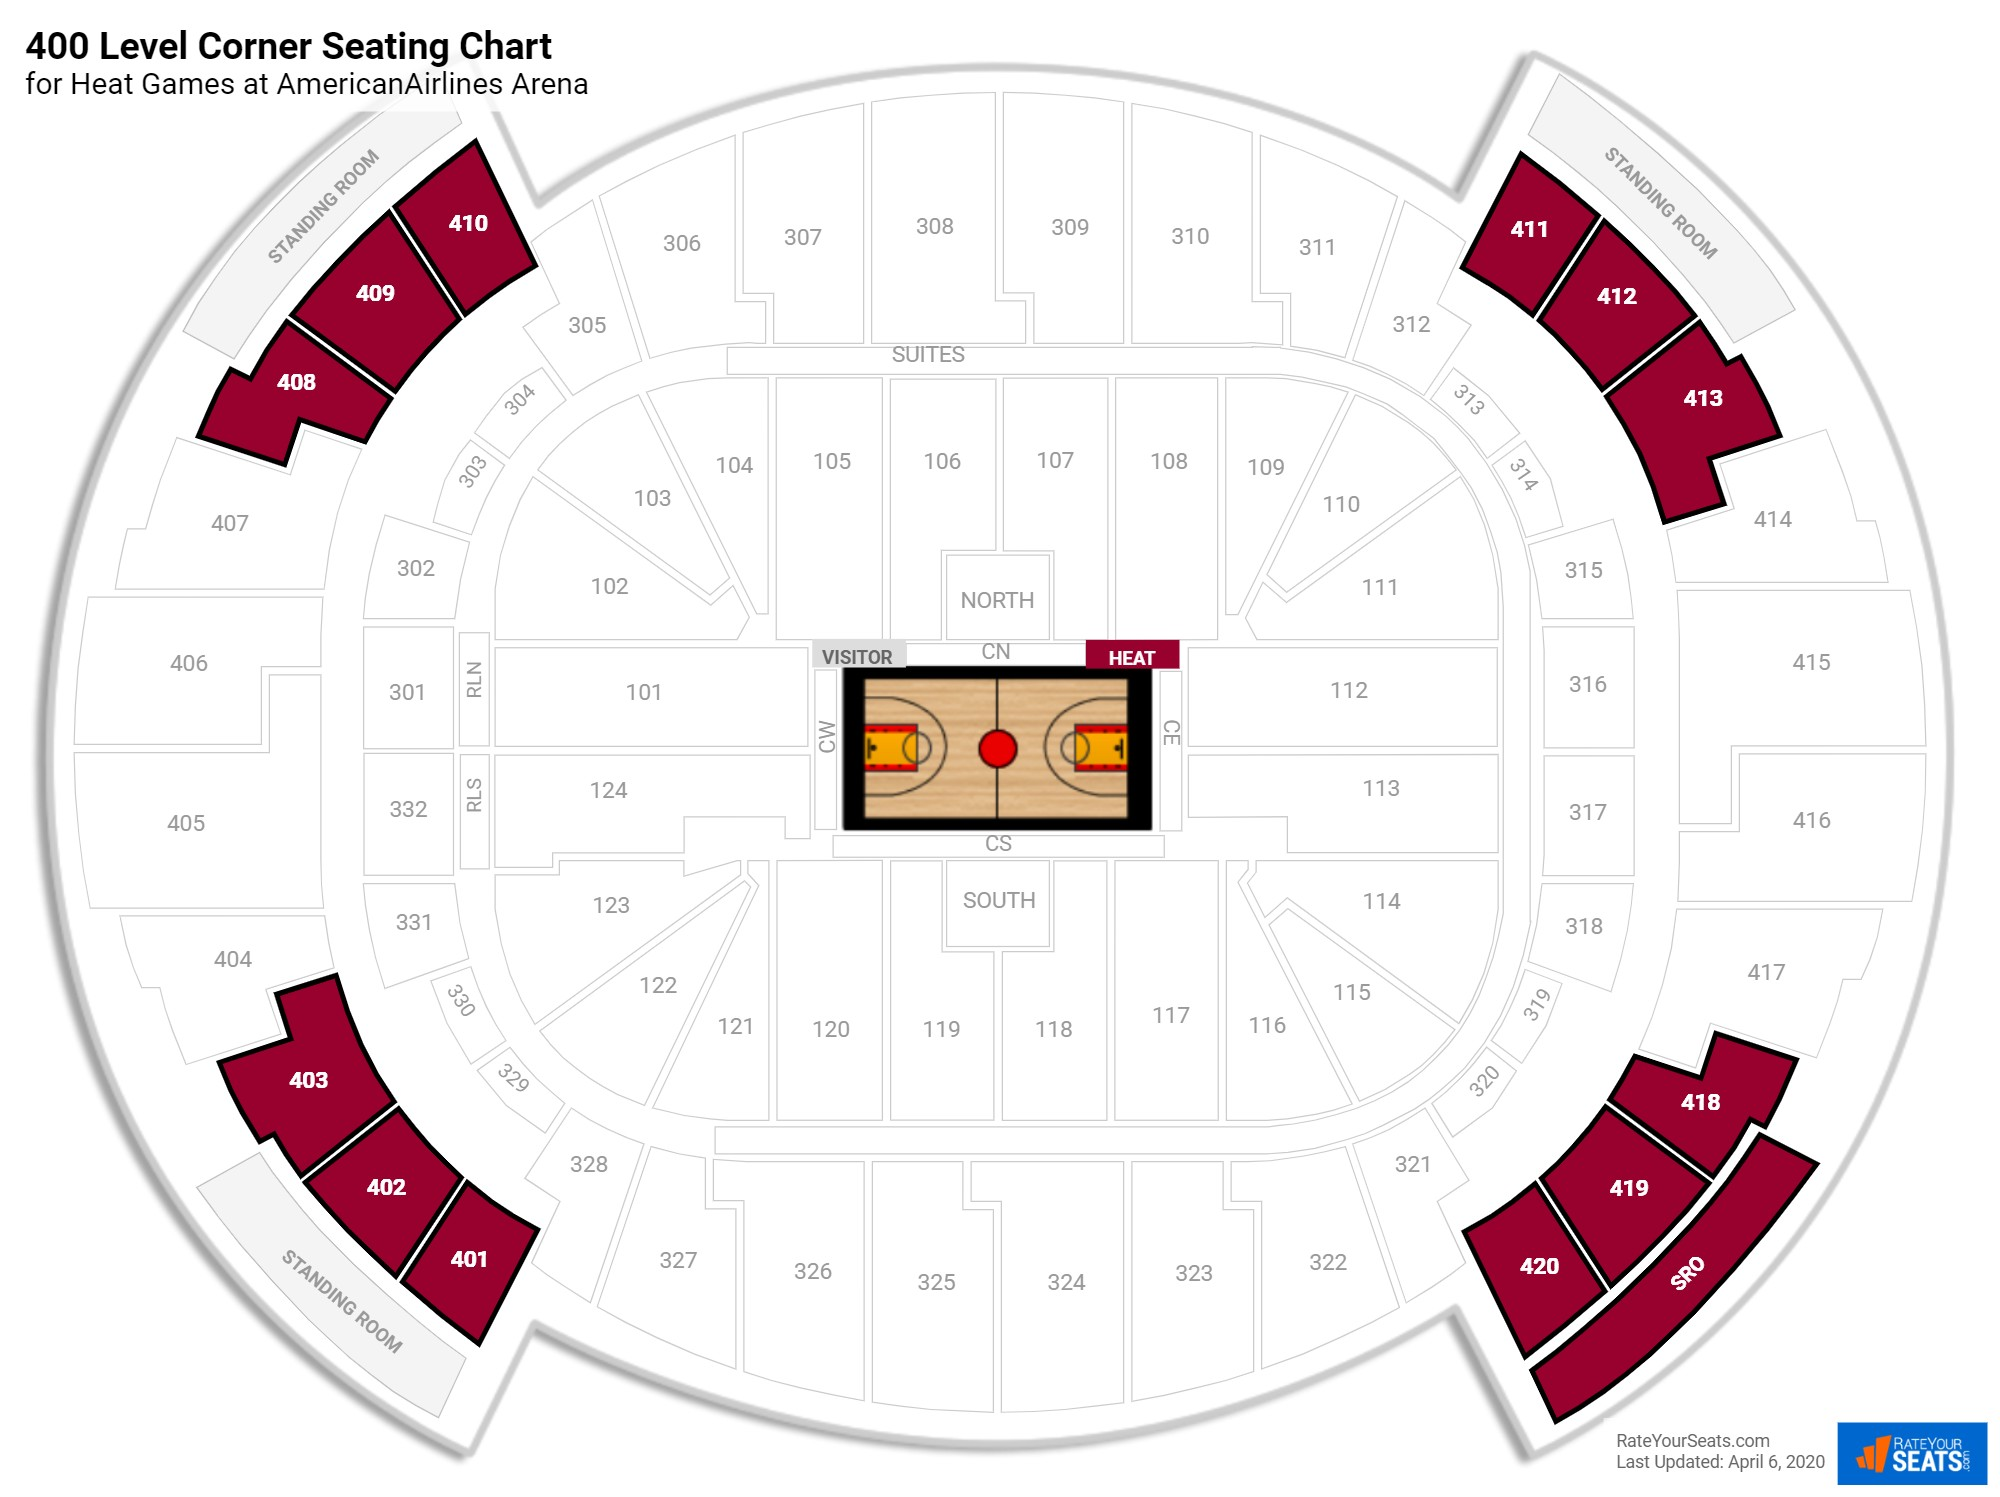 AmericanAirlines Arena 400 Level Corner seating chart